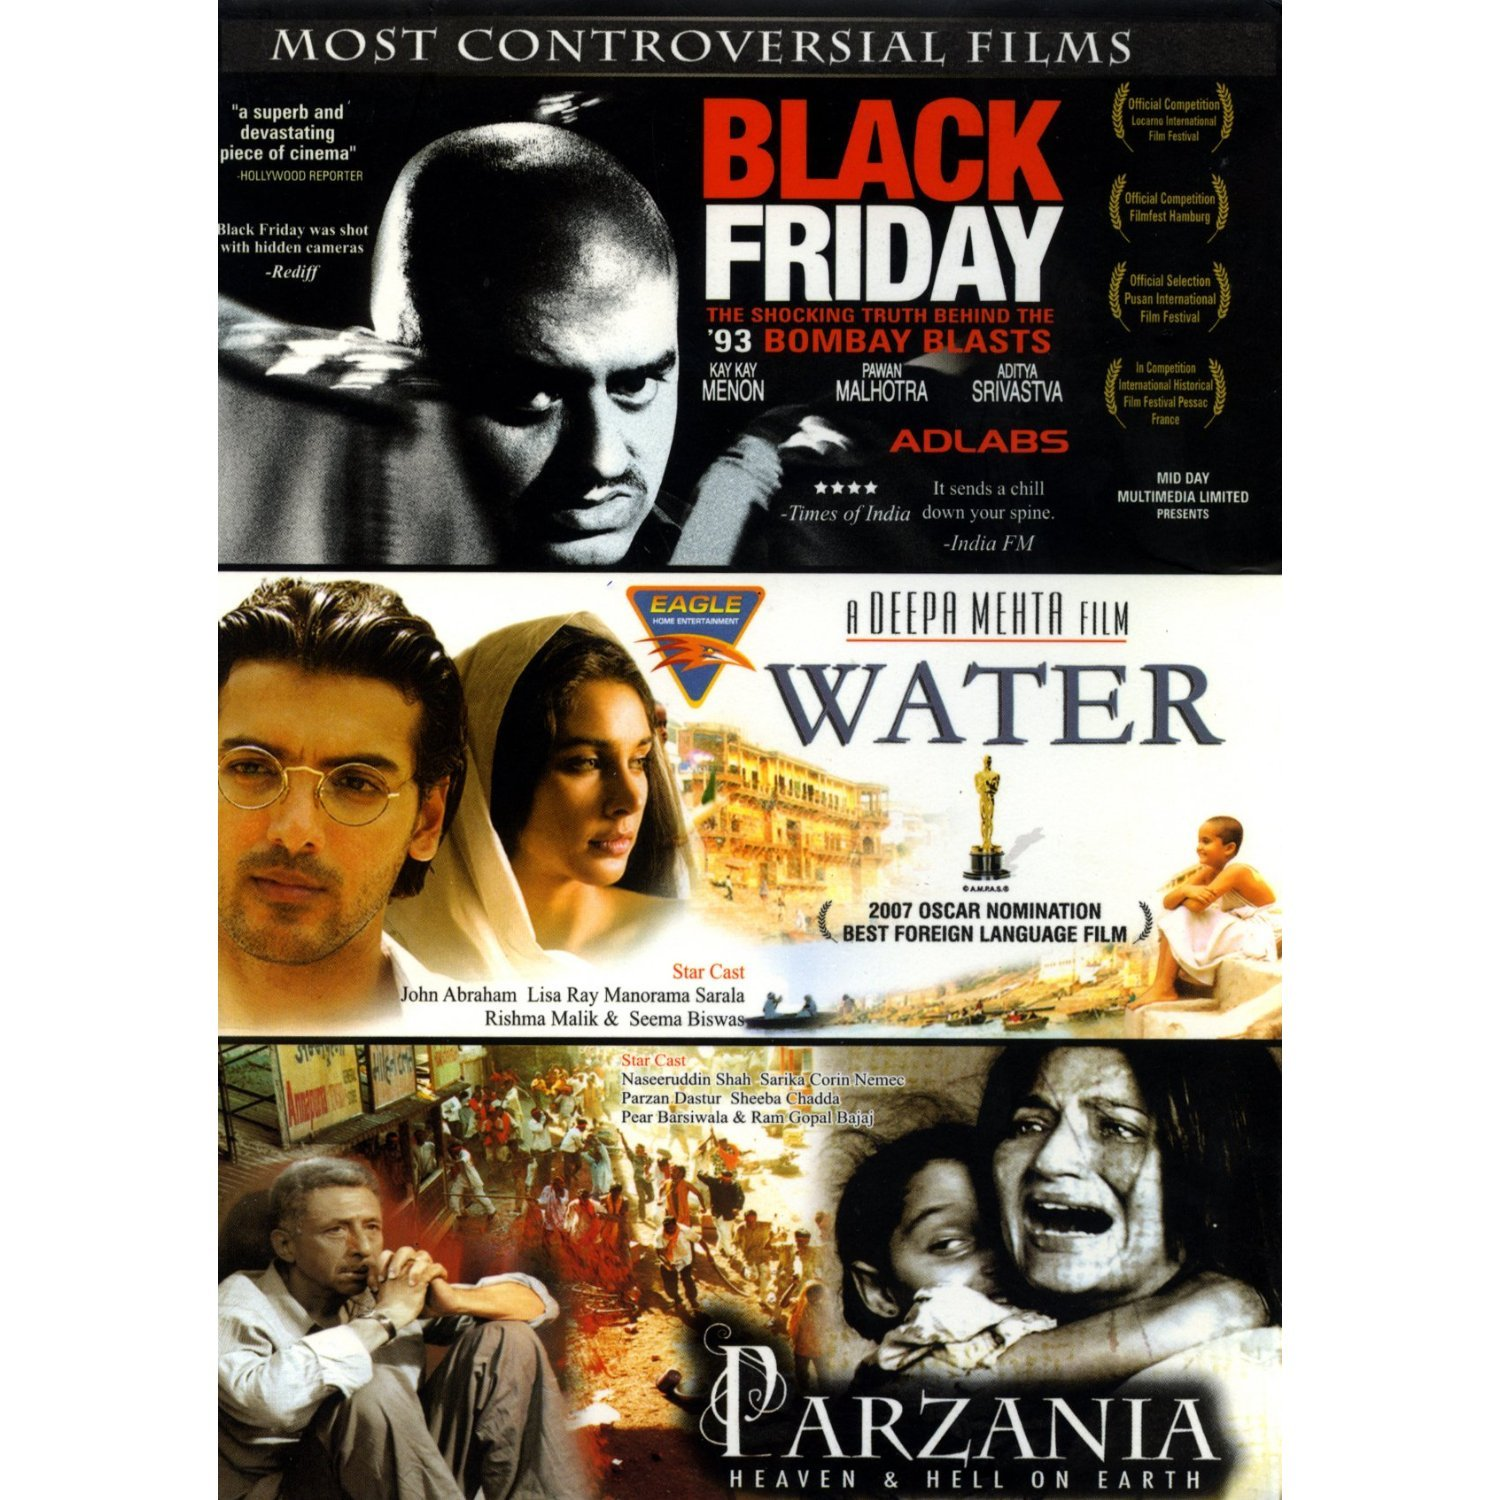 Free download film 5 parzania by lighbisconcroot issuu.